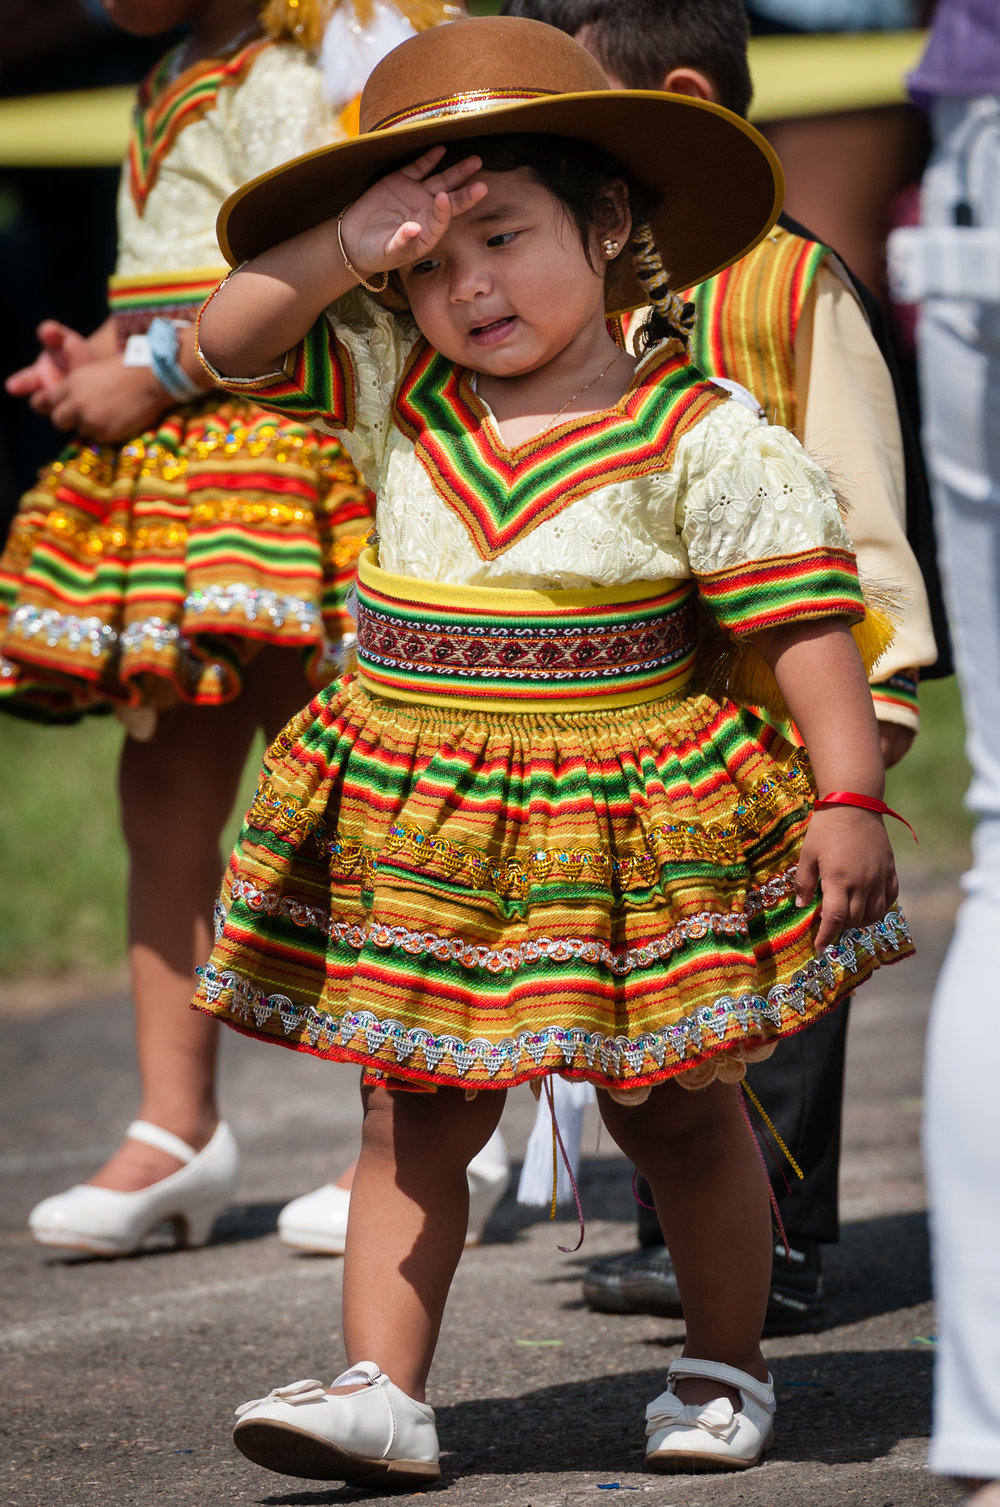 Here is a moment when a young performer from Salay Bolivia USA pauses, raising her hand to her head, just after her performance of a Salay dance.